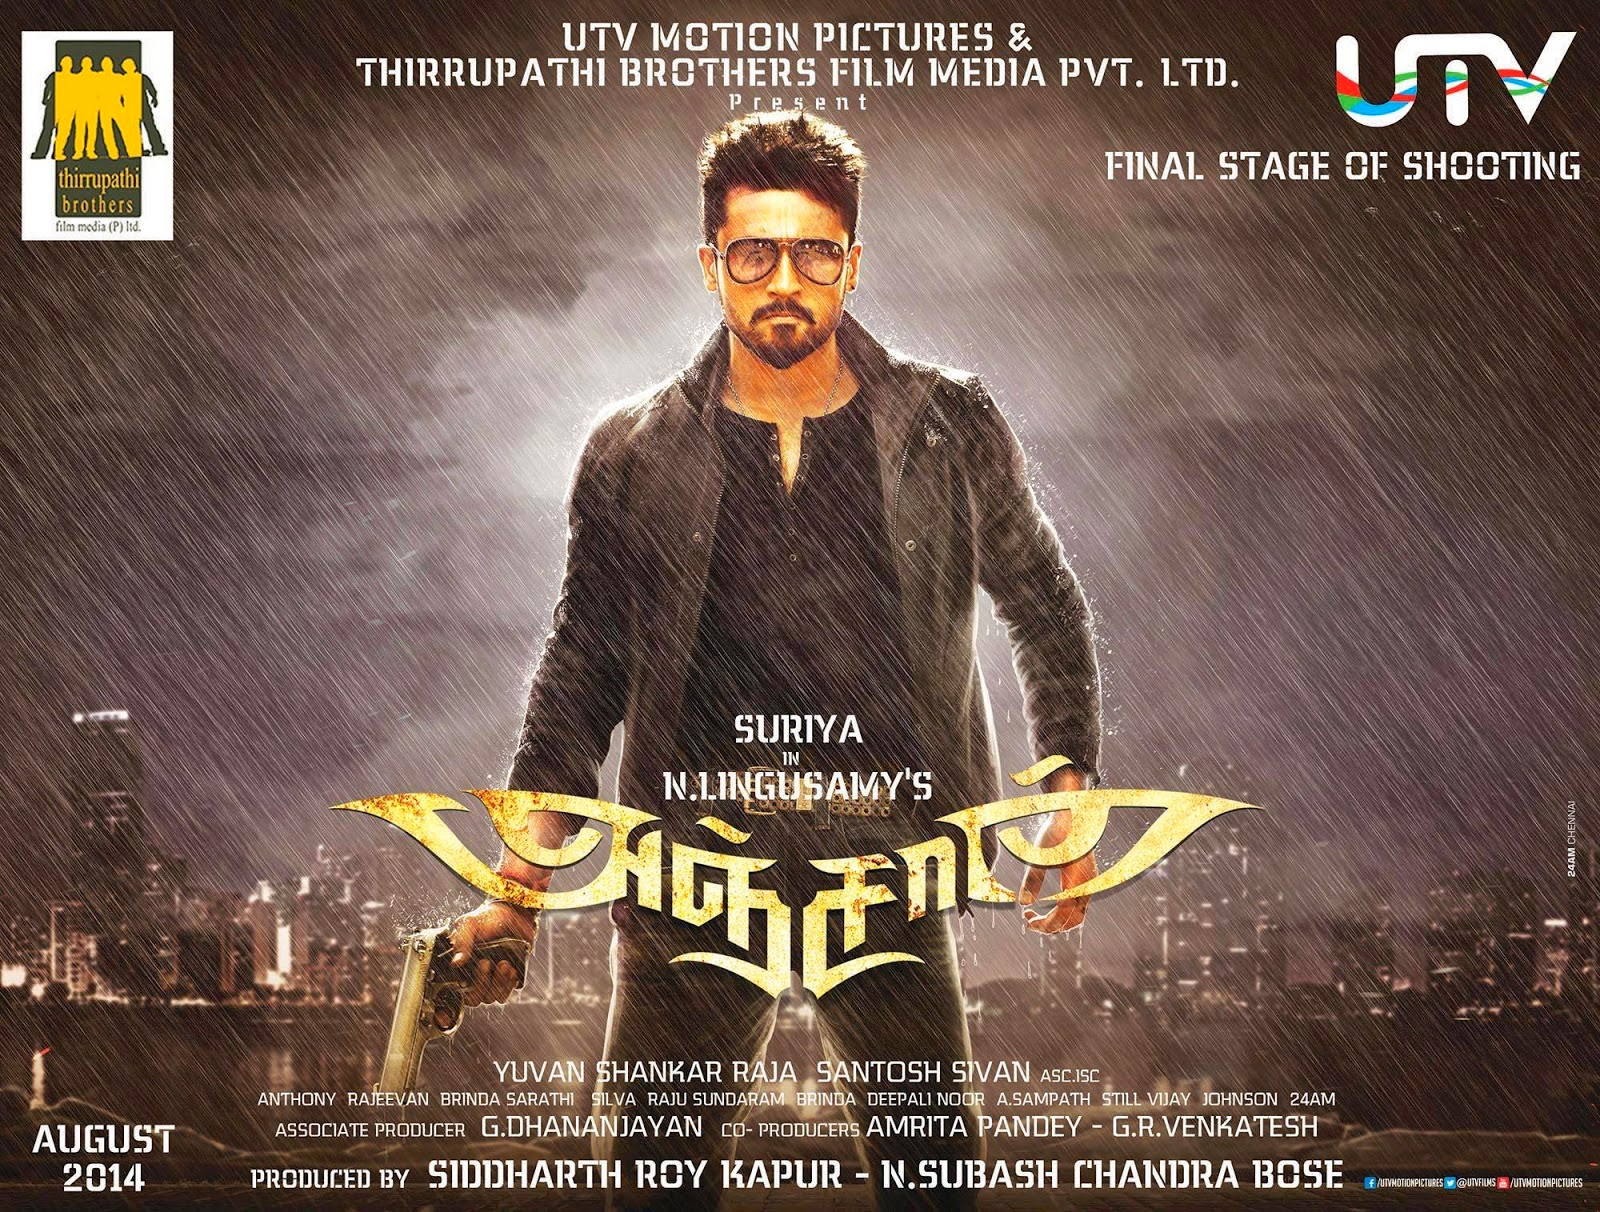 Anjaan Working Stills And Latest Wallpapers Hd Posters Filmy Reels